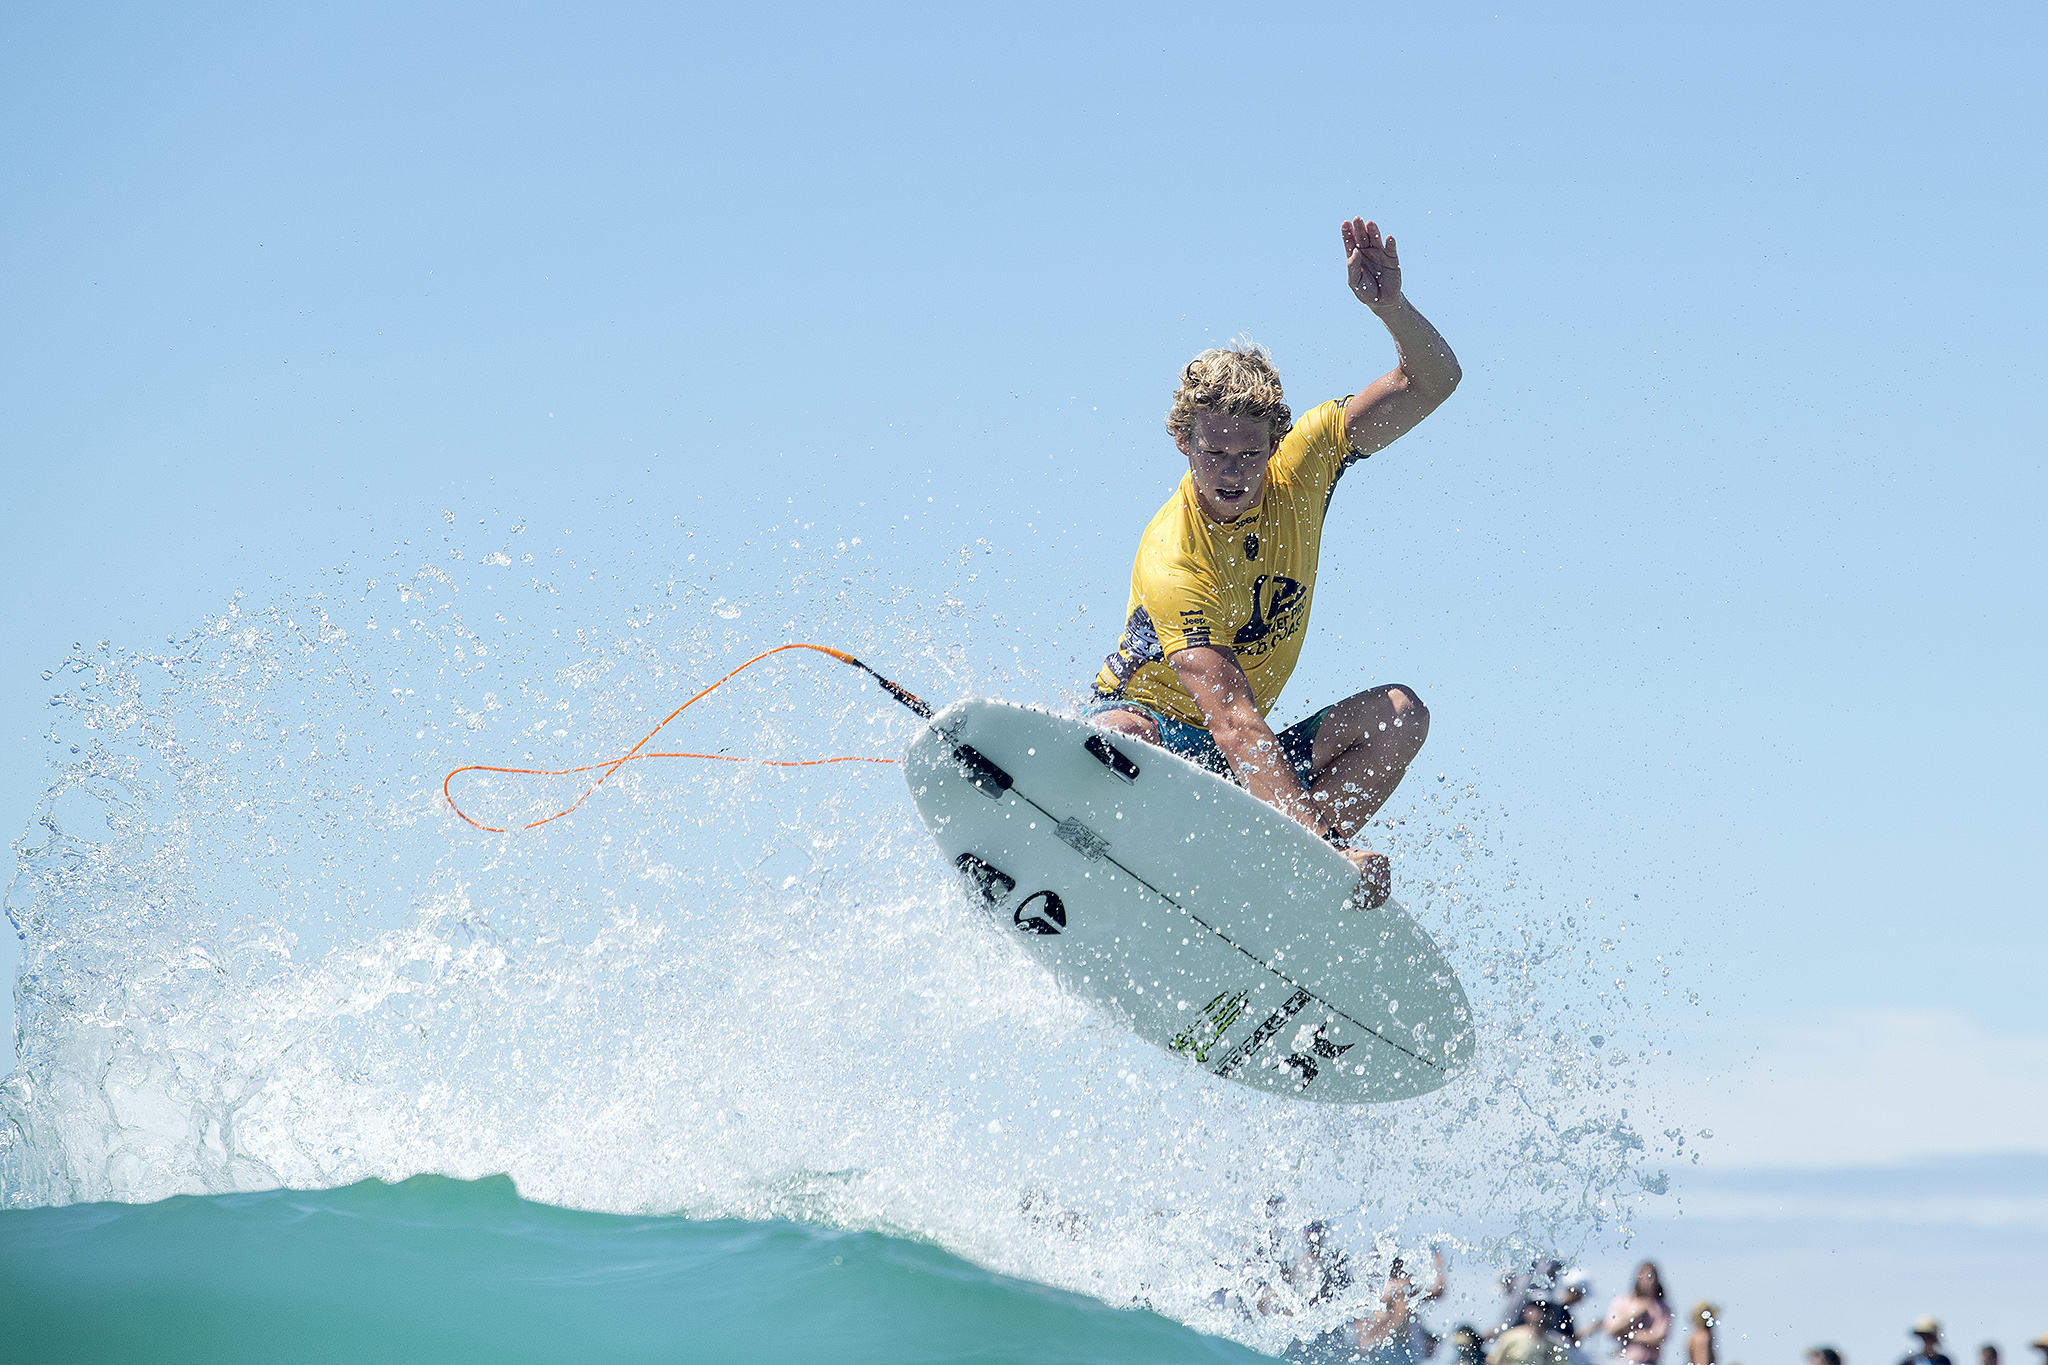 62e2a076b3 JEEP Rankings Leader and current World Champion John John Florence of Hawaii  advanced to the Quarterfinals after winning Heat 2 of Round Four at the  Quik ...